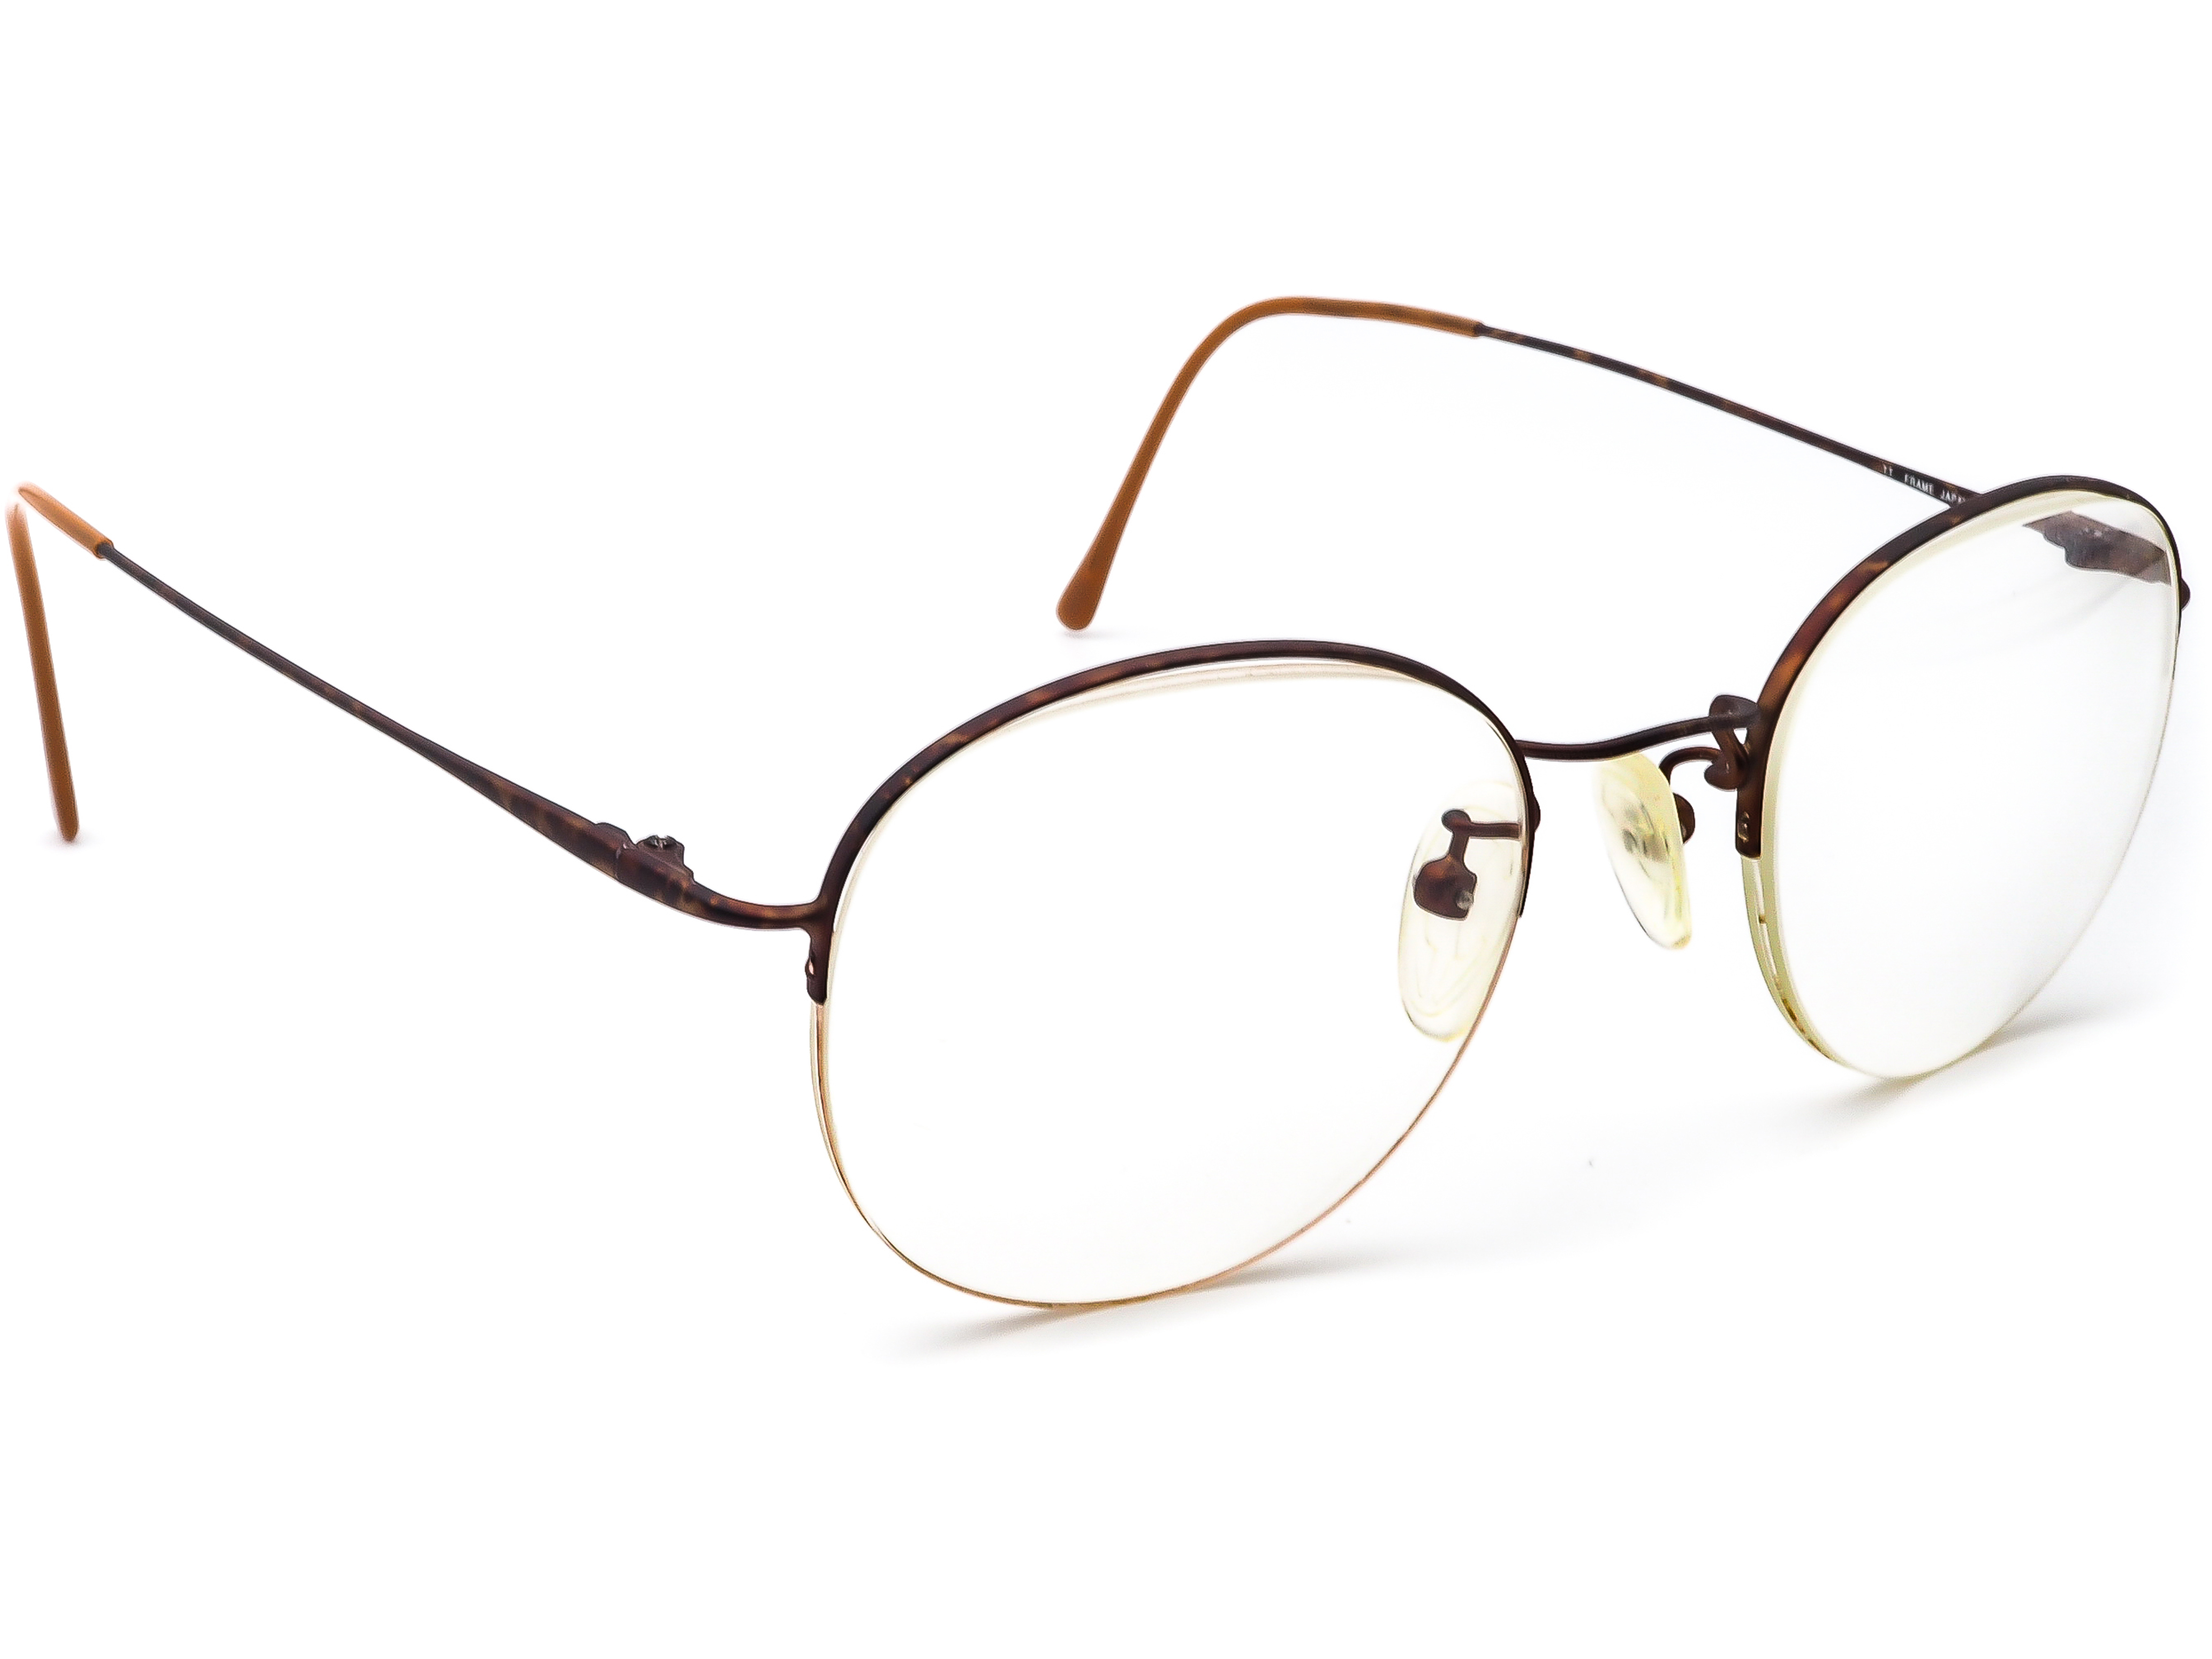 Charmant 4430 Eyeglasses